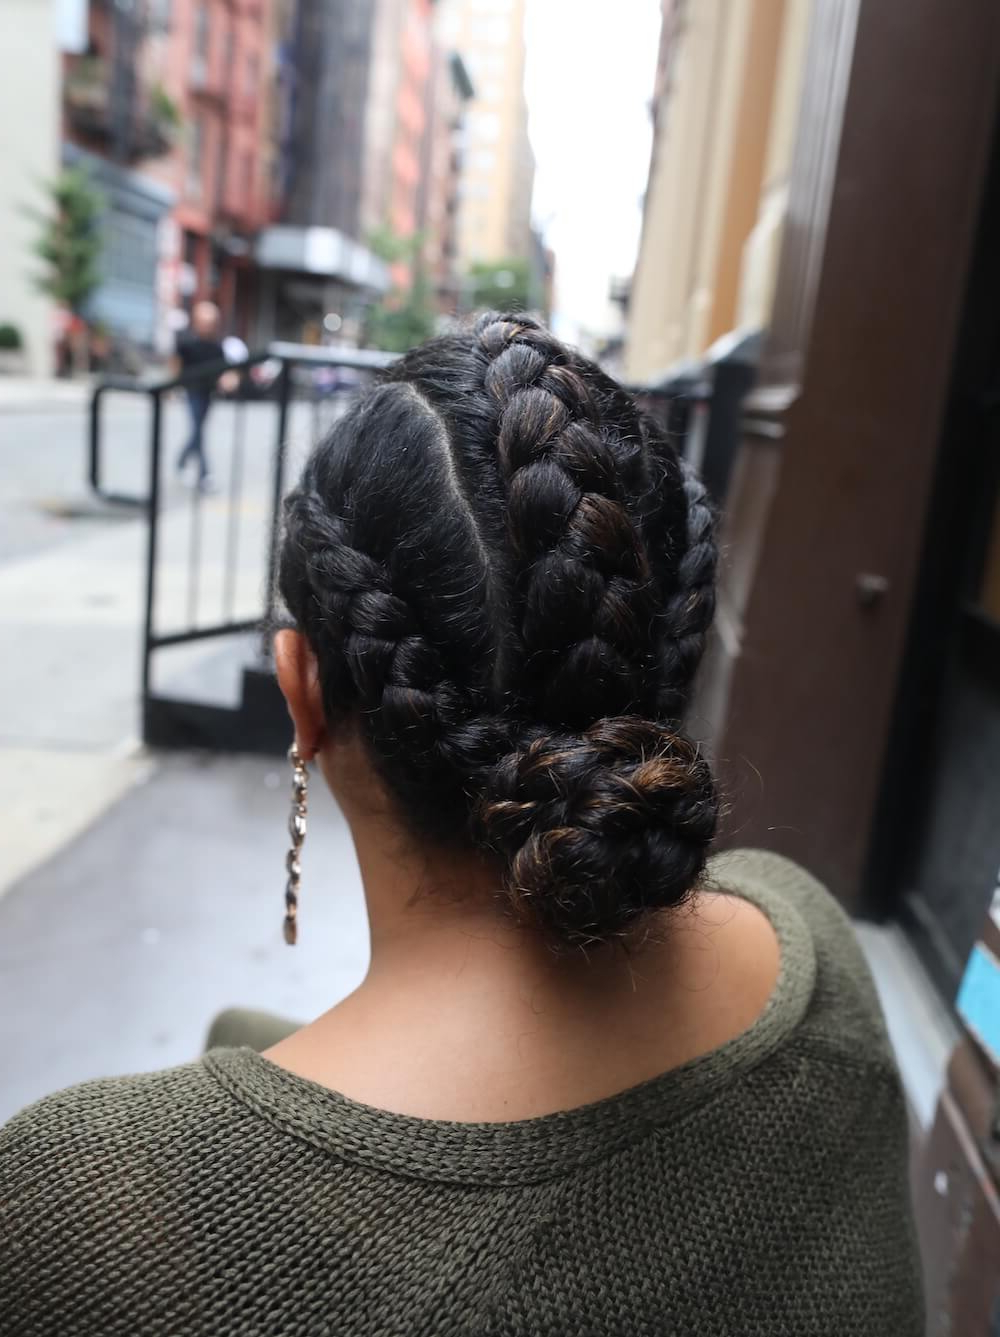 Devacurl 101: Different Ways On How To Braid Curly Hair Within 2019 Updo Hairstyles With 2 Strand Braid And Curls (View 7 of 20)